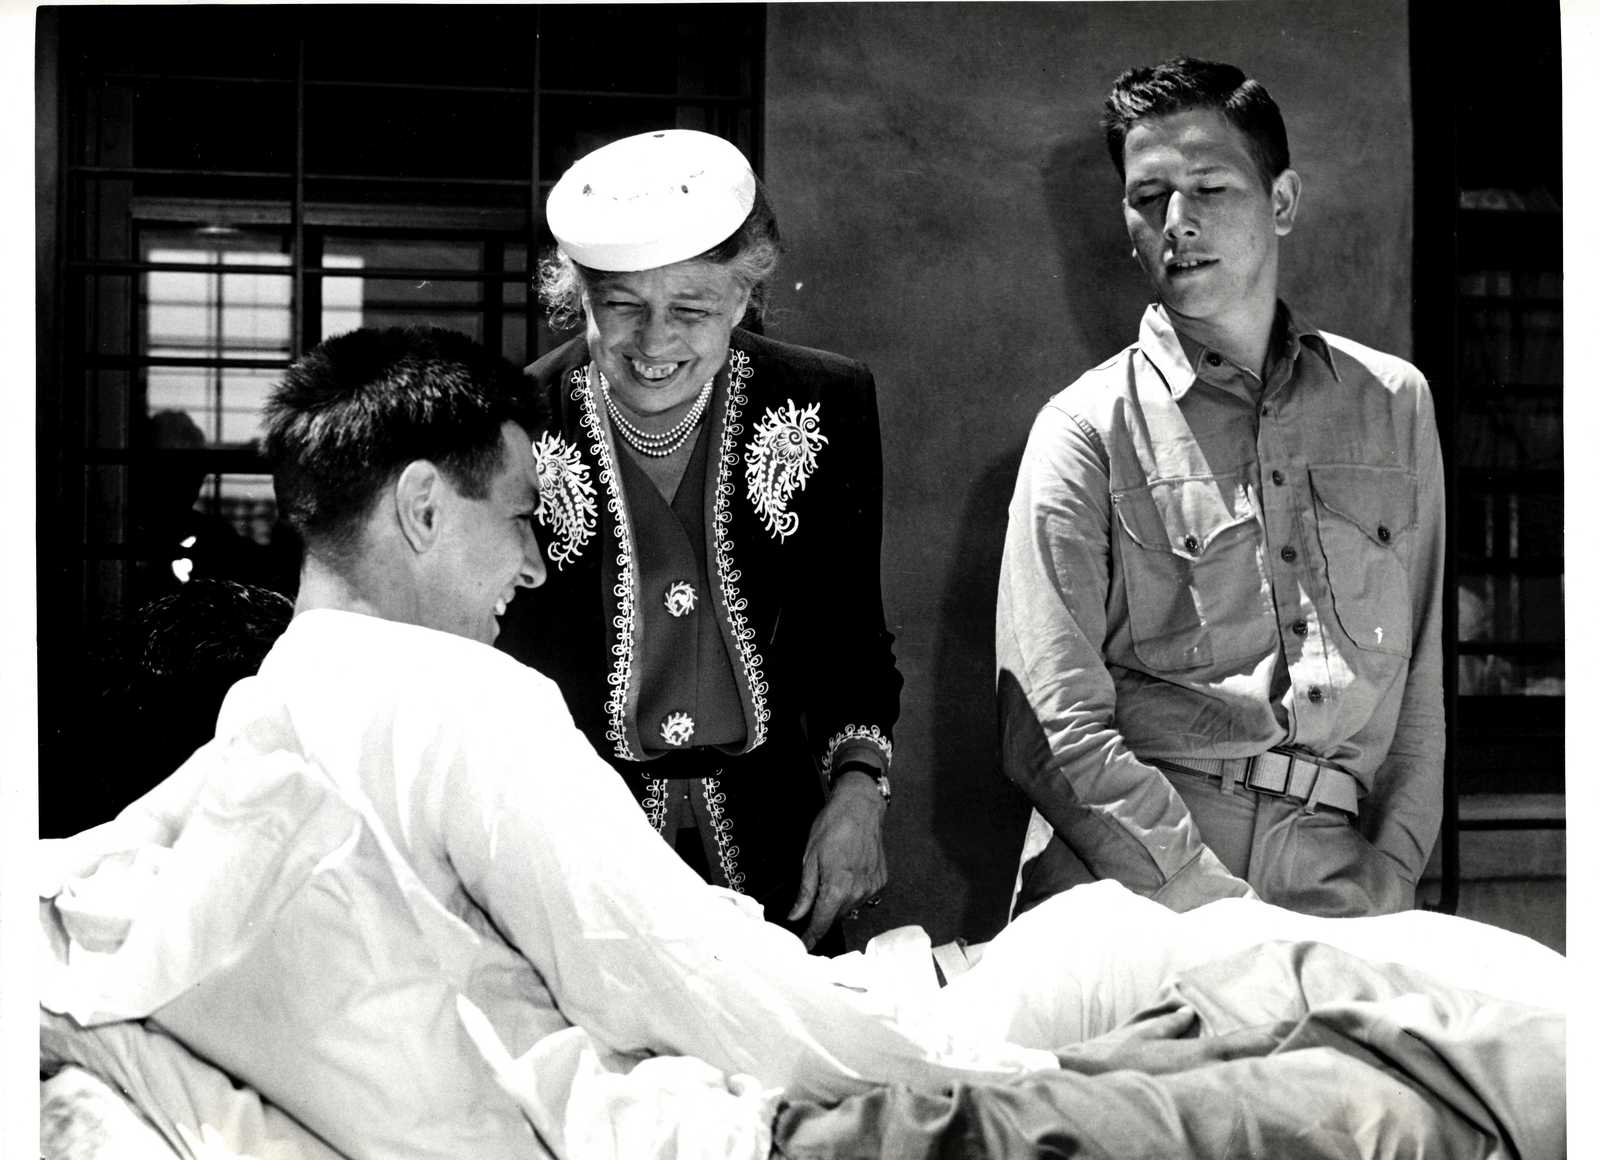 Eleanor Roosevelt Chatting with Injured Naval Man